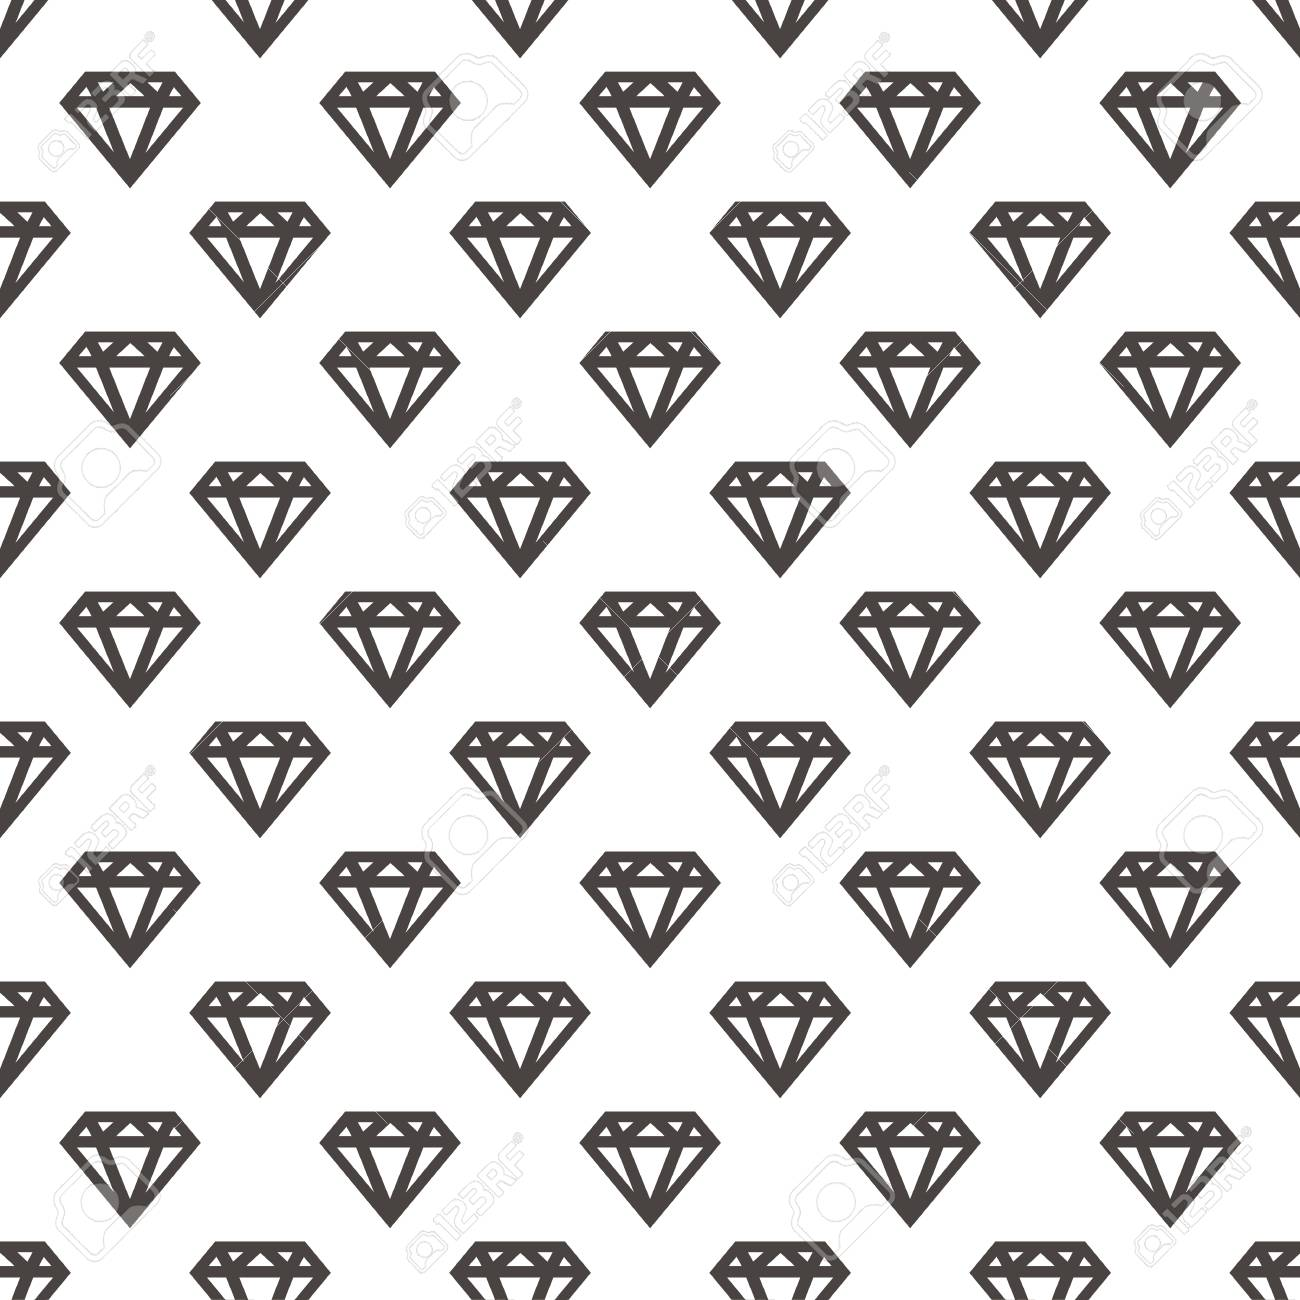 Pattern Diamonds Abstract Geometric Wallpaper Vector Illustration Royalty Free Cliparts Vectors And Stock Illustration Image 95302258